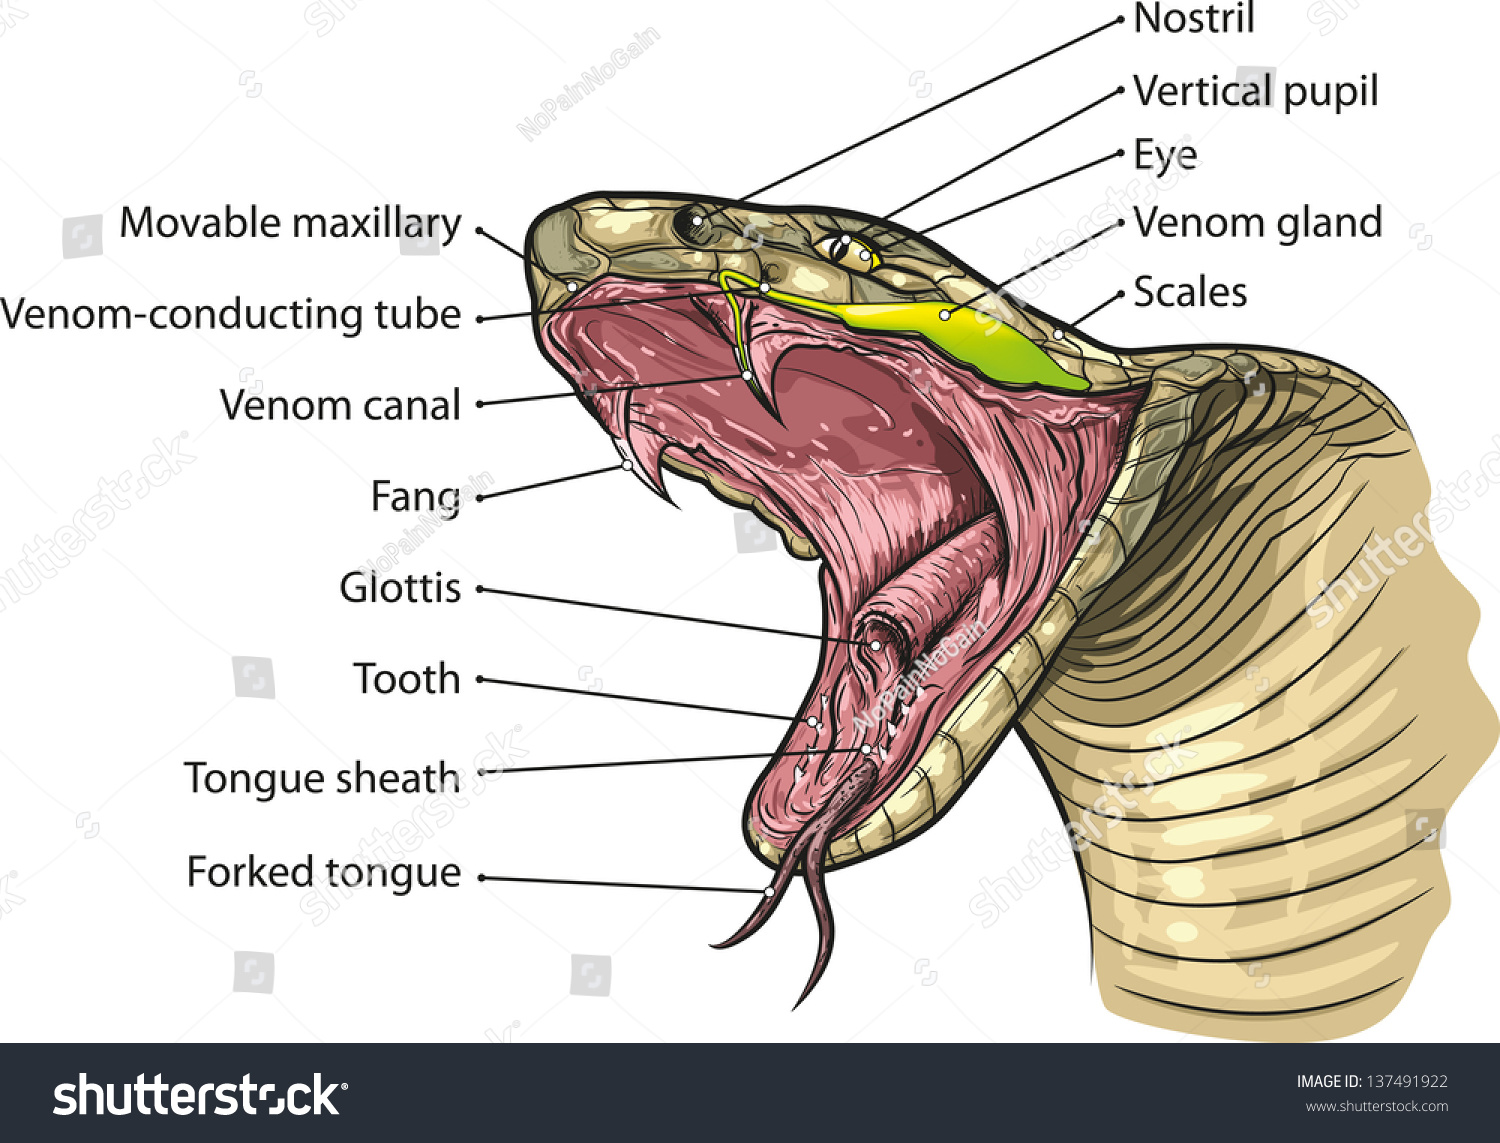 Diagram Of A Snakes Mouth Wiring And Ebooks Gallery Images Information Snake Skeleton Anatomy Stock Vector Royalty Free 137491922 Shutterstock Rh Com Toung